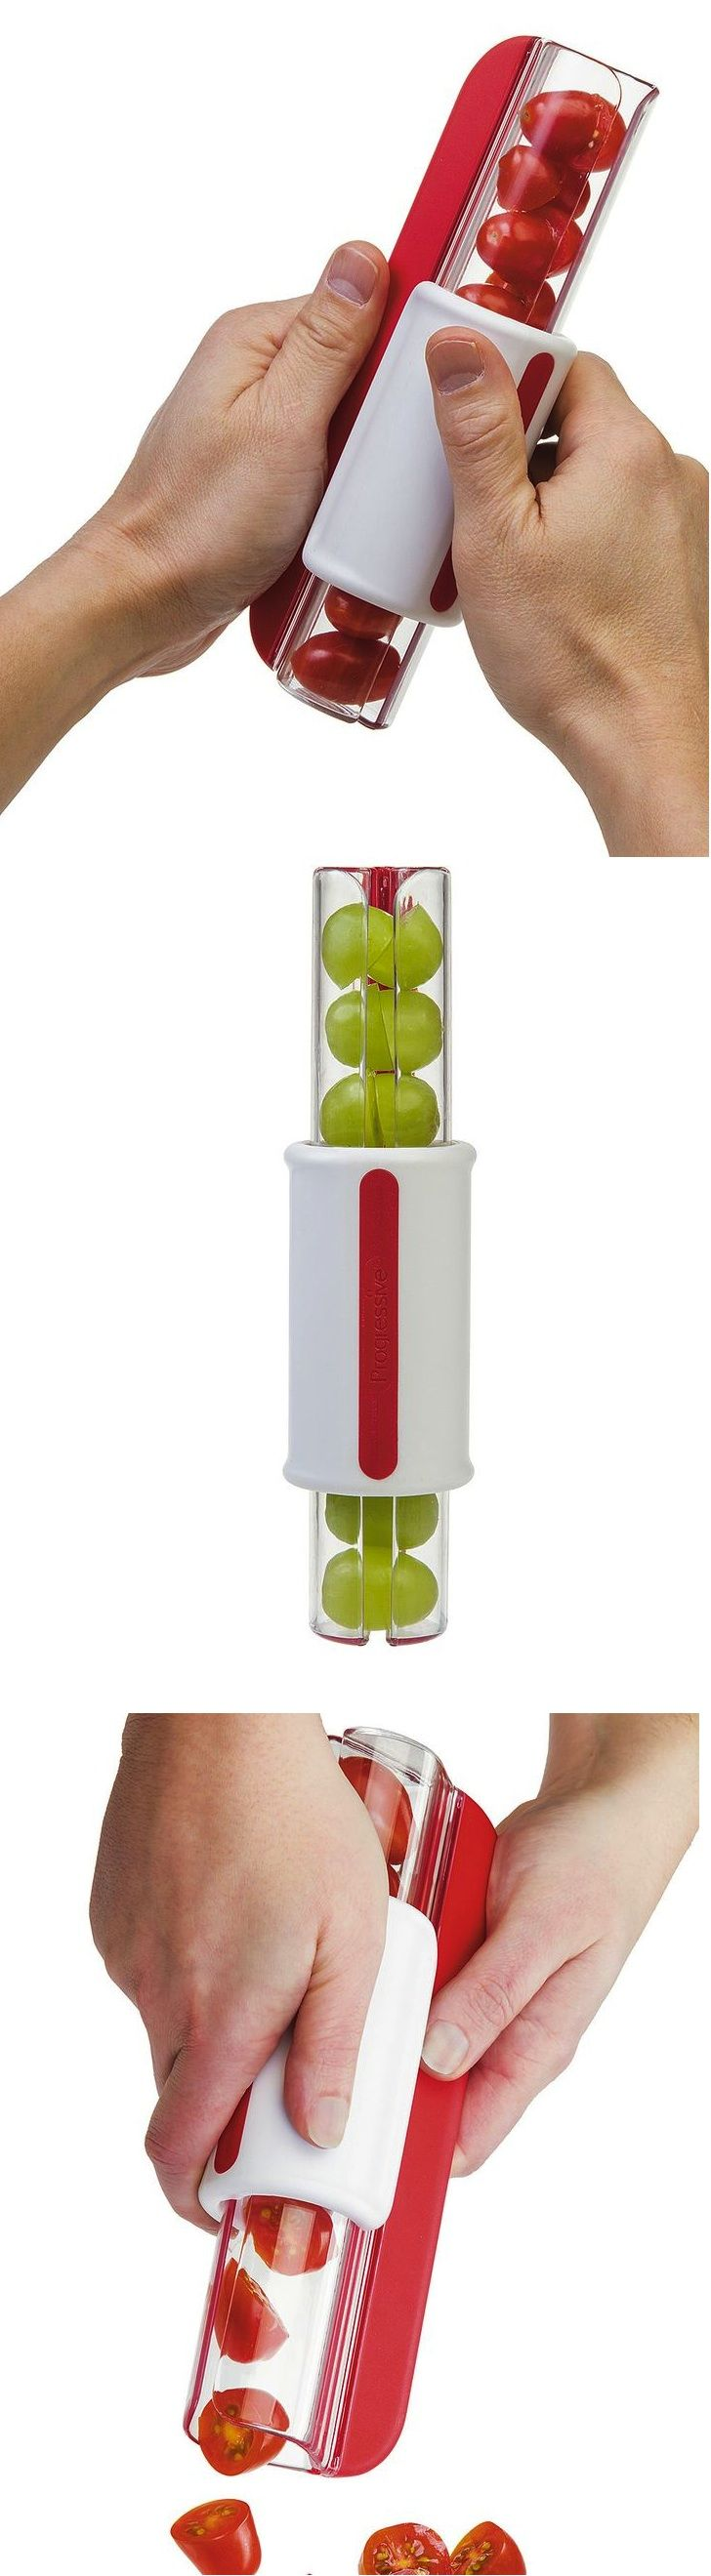 Progressive Zip Slicer: Slice cherry tomatoes, grapes and more with a quick zip! Ideal for snacks, salads and pasta.